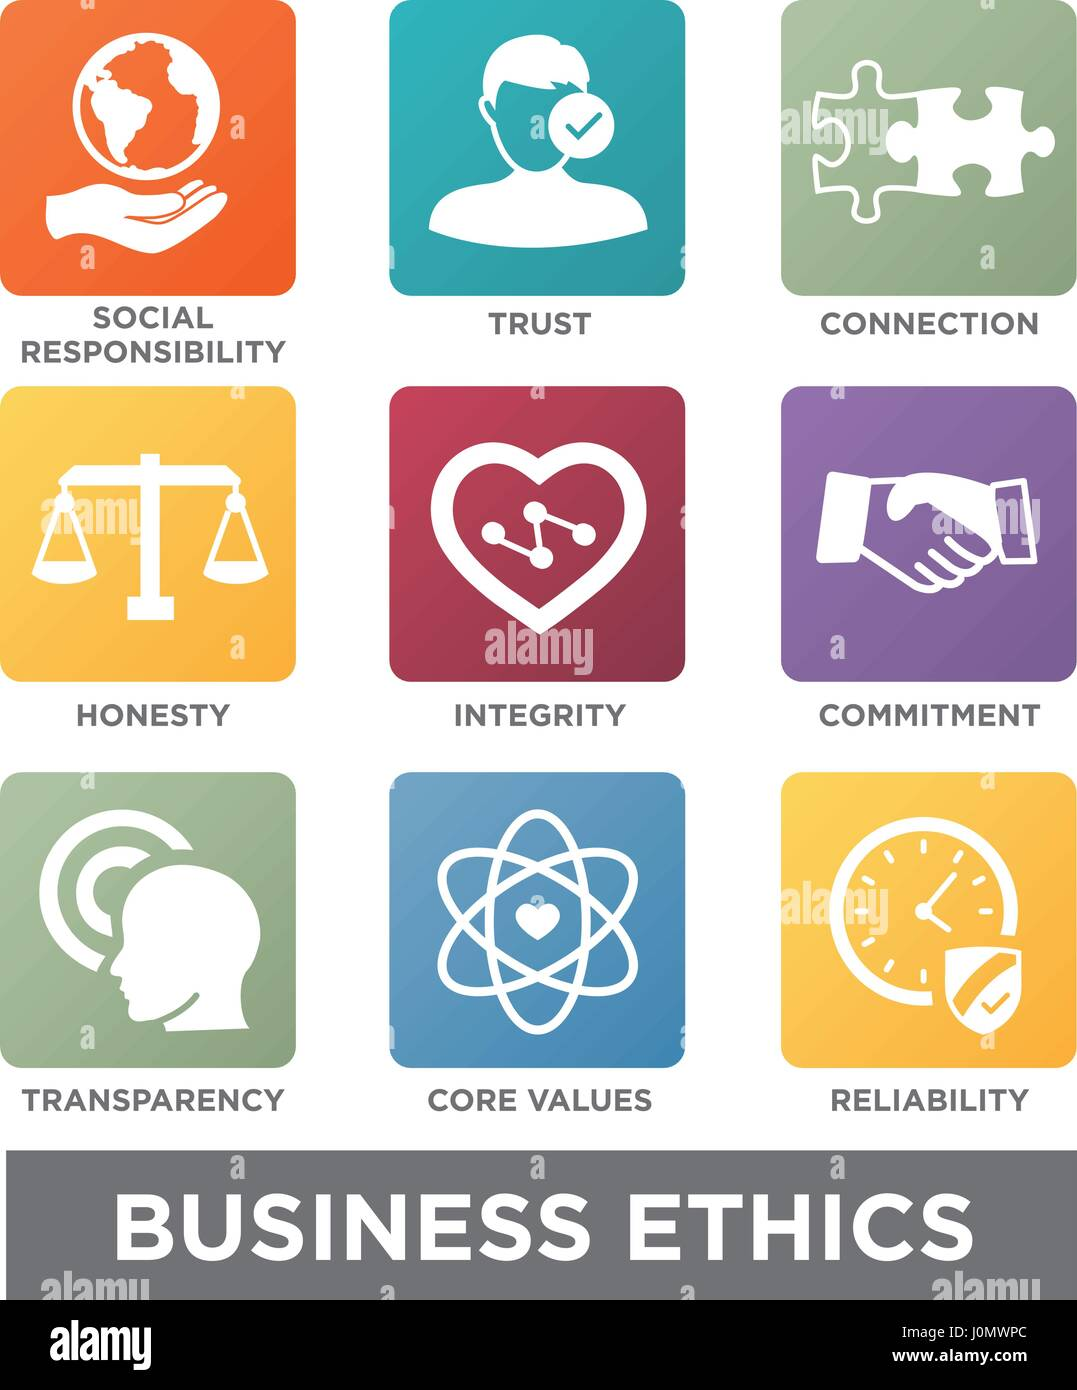 Business Ethics Solid Icon Set Isolated with Text - Stock Image